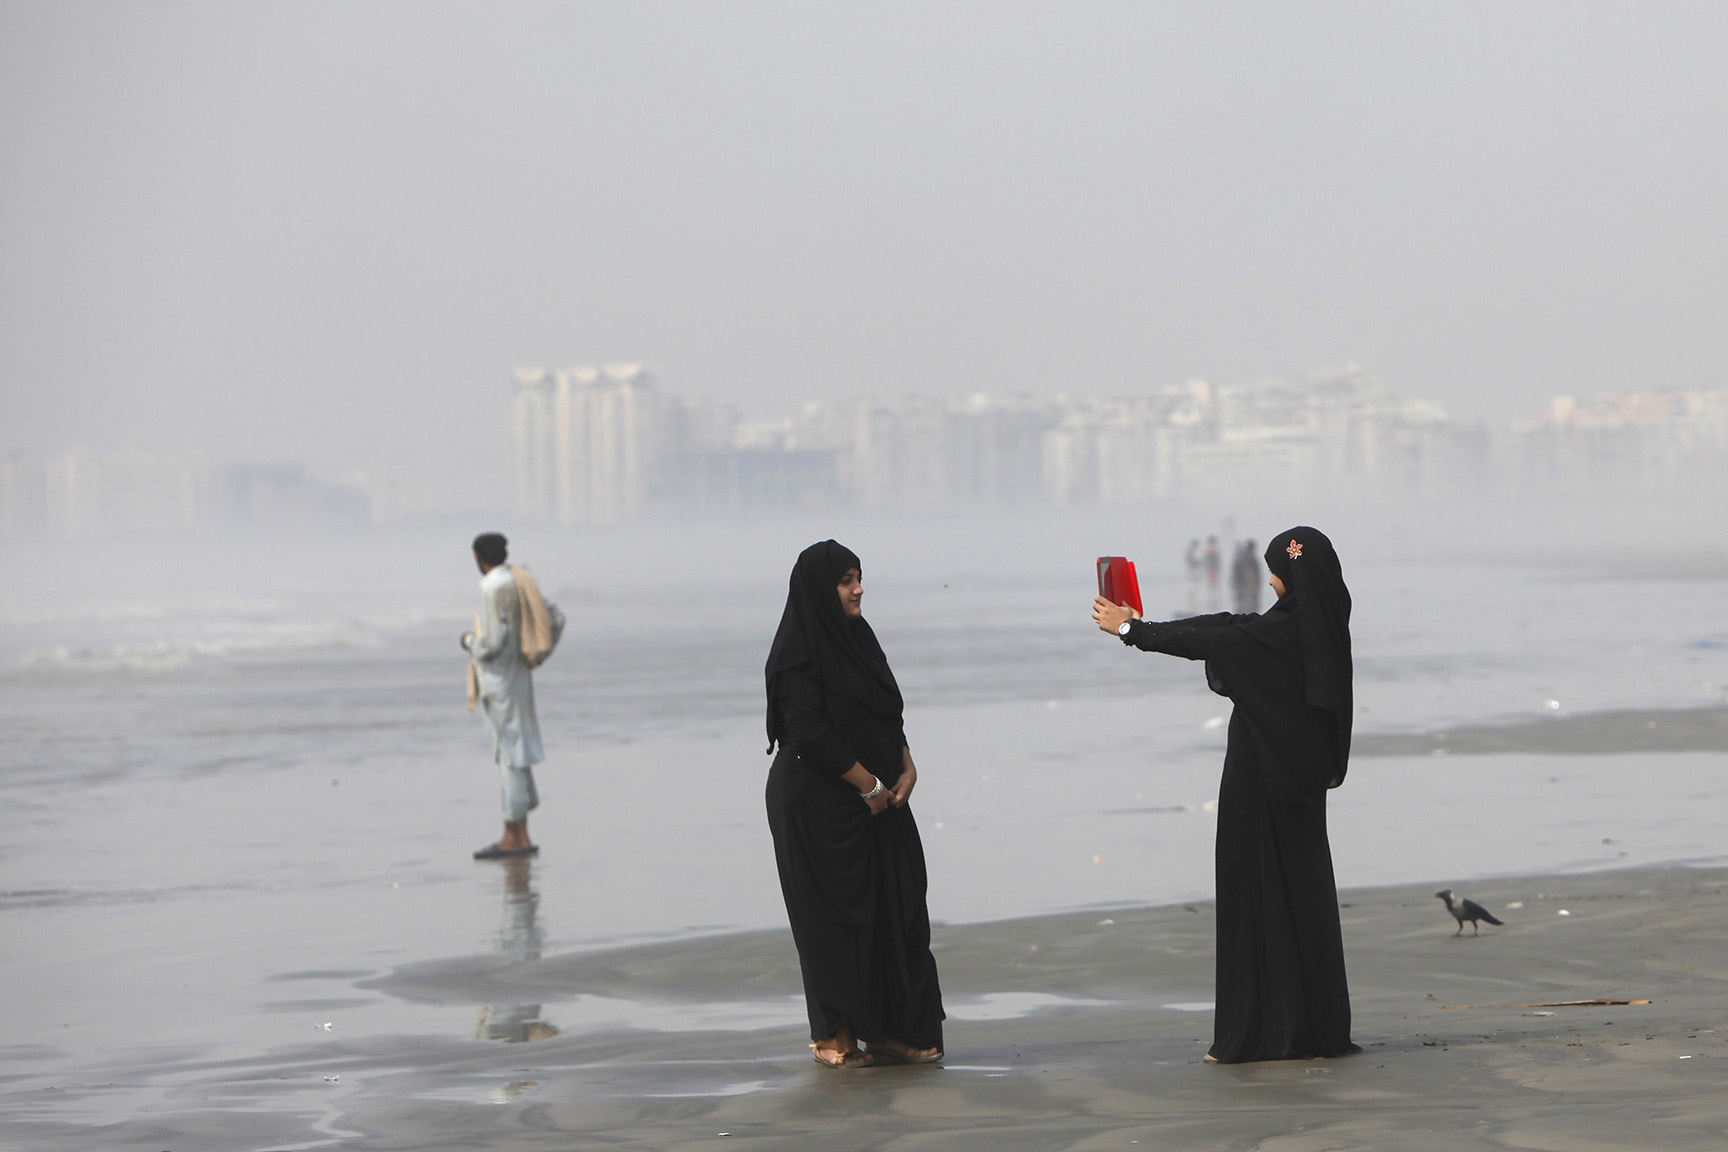 Girls clad in burqas take picture with a tablet while visiting Karachi's Clifton beach